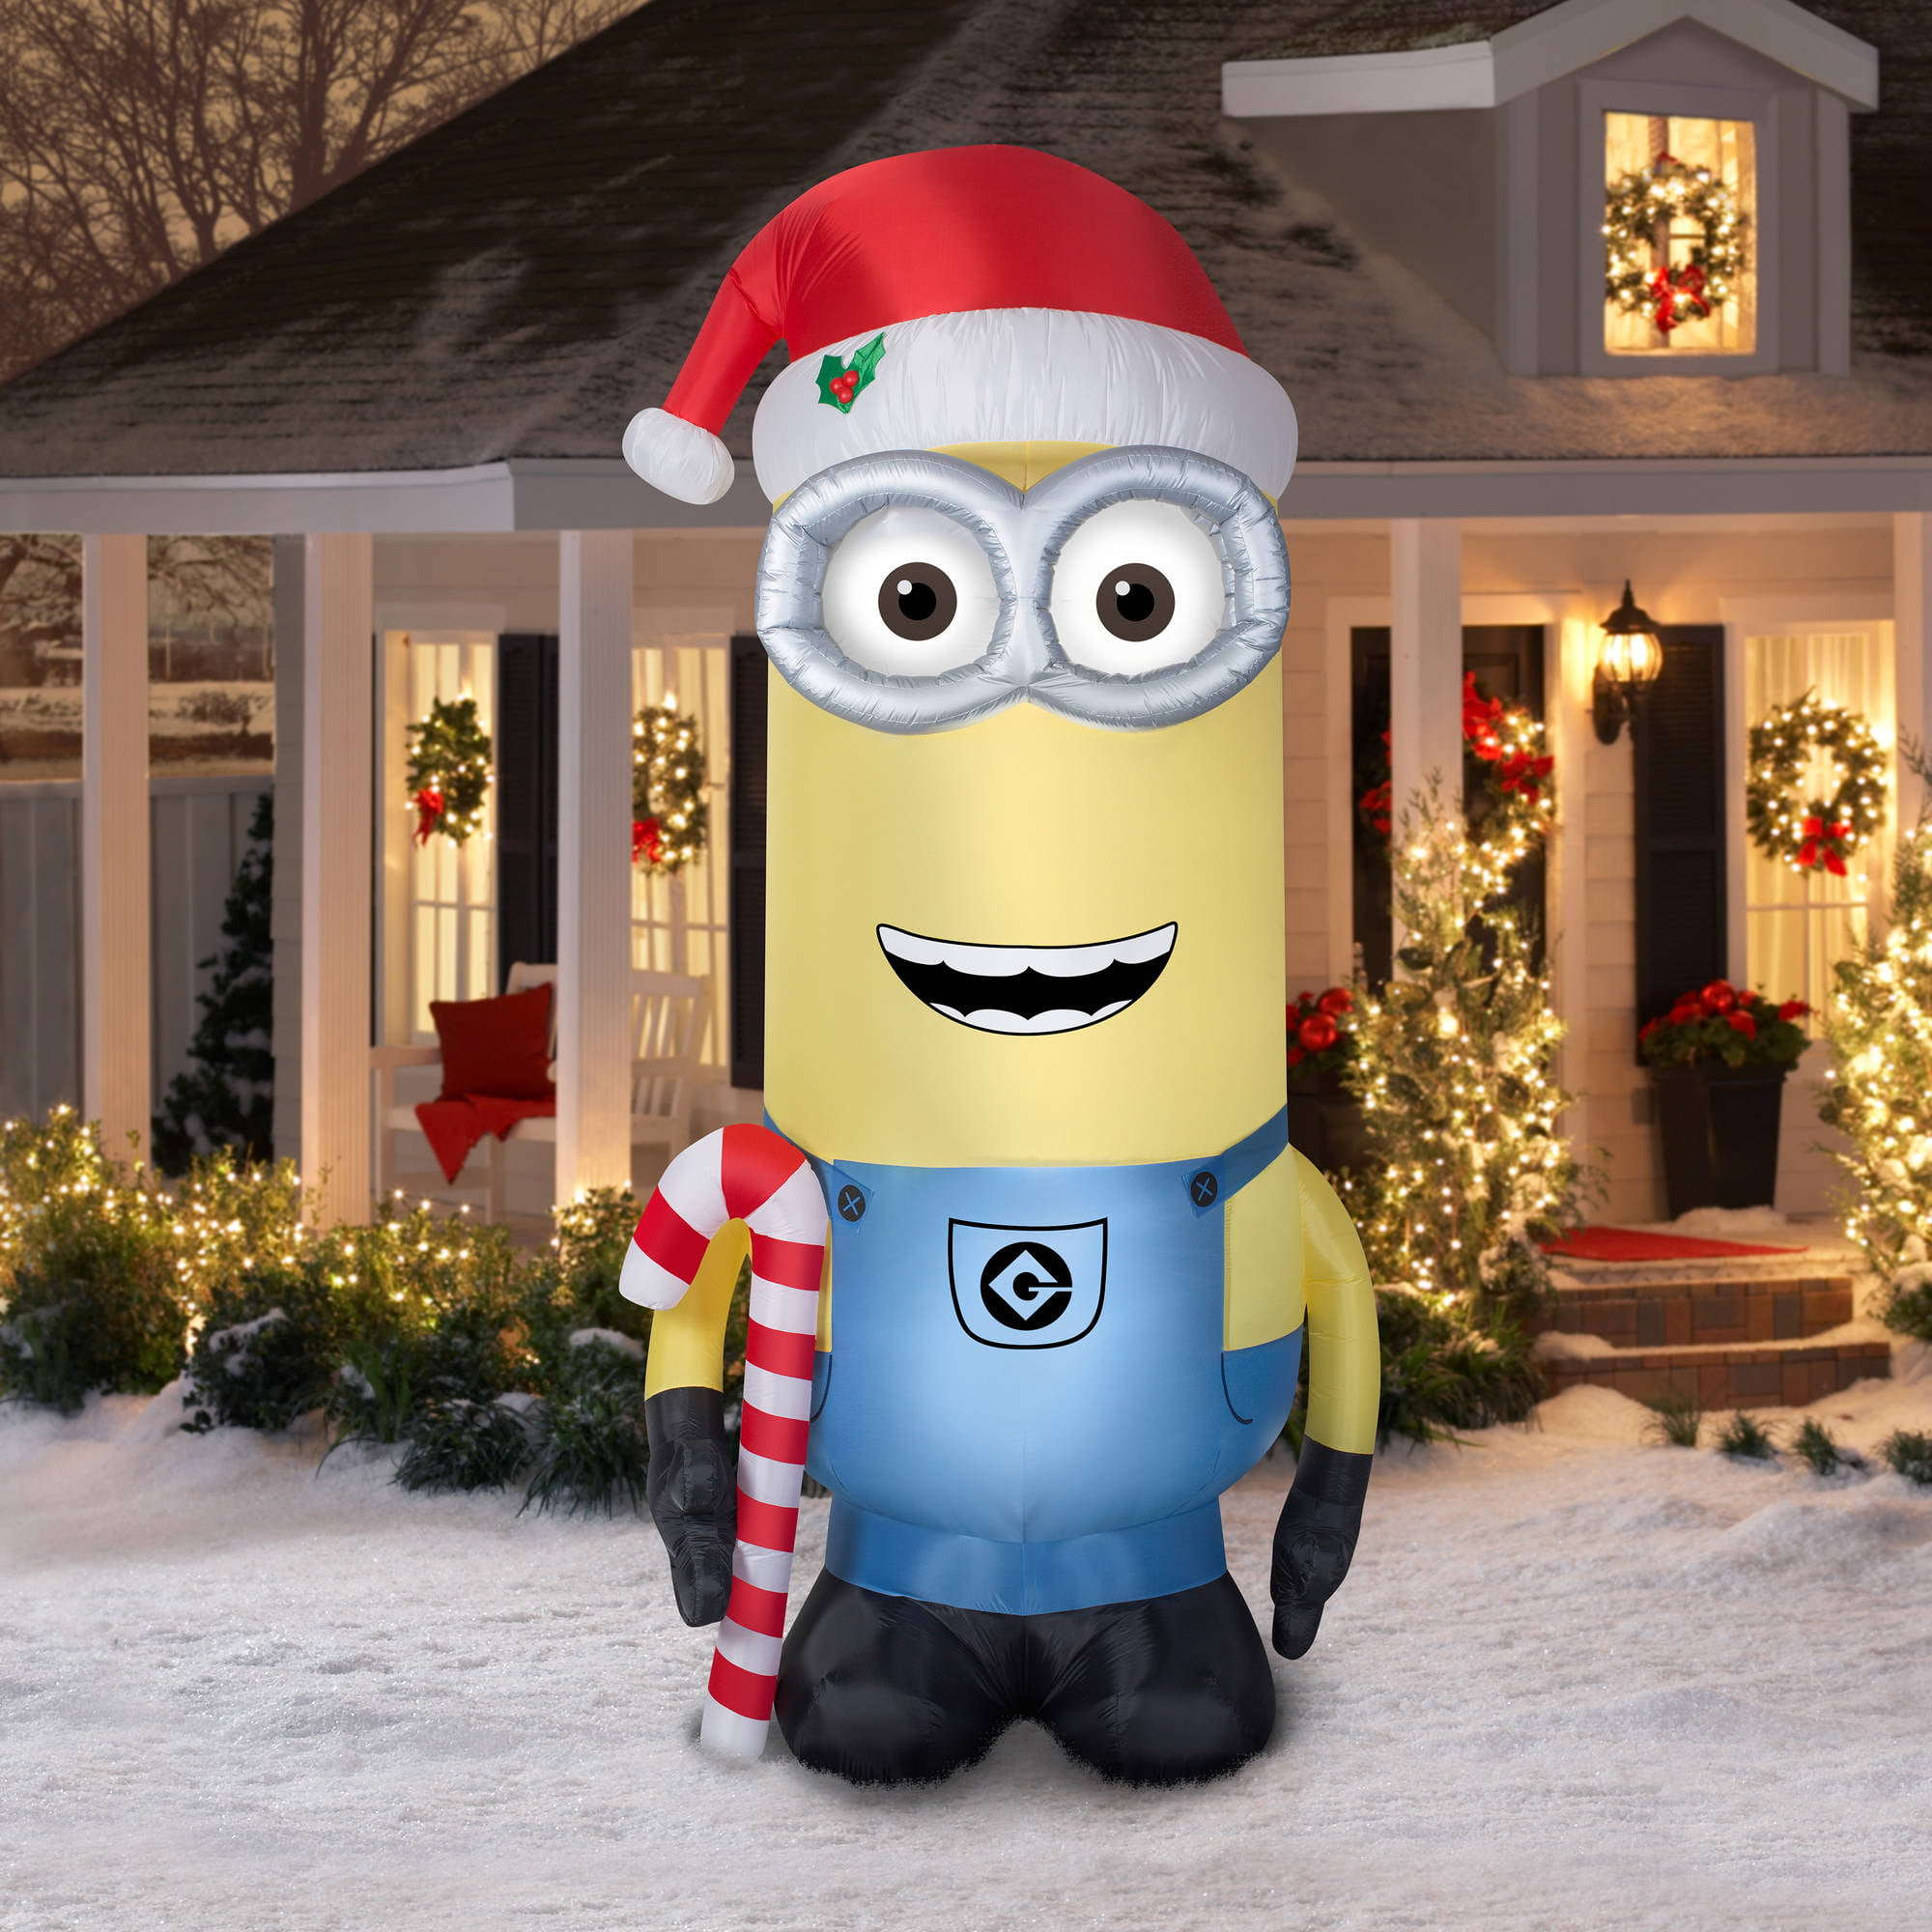 airblown inflatables 11 ft minion kevin with candy cane and santa hat walmartcom - Inflatable Outdoor Christmas Decorations